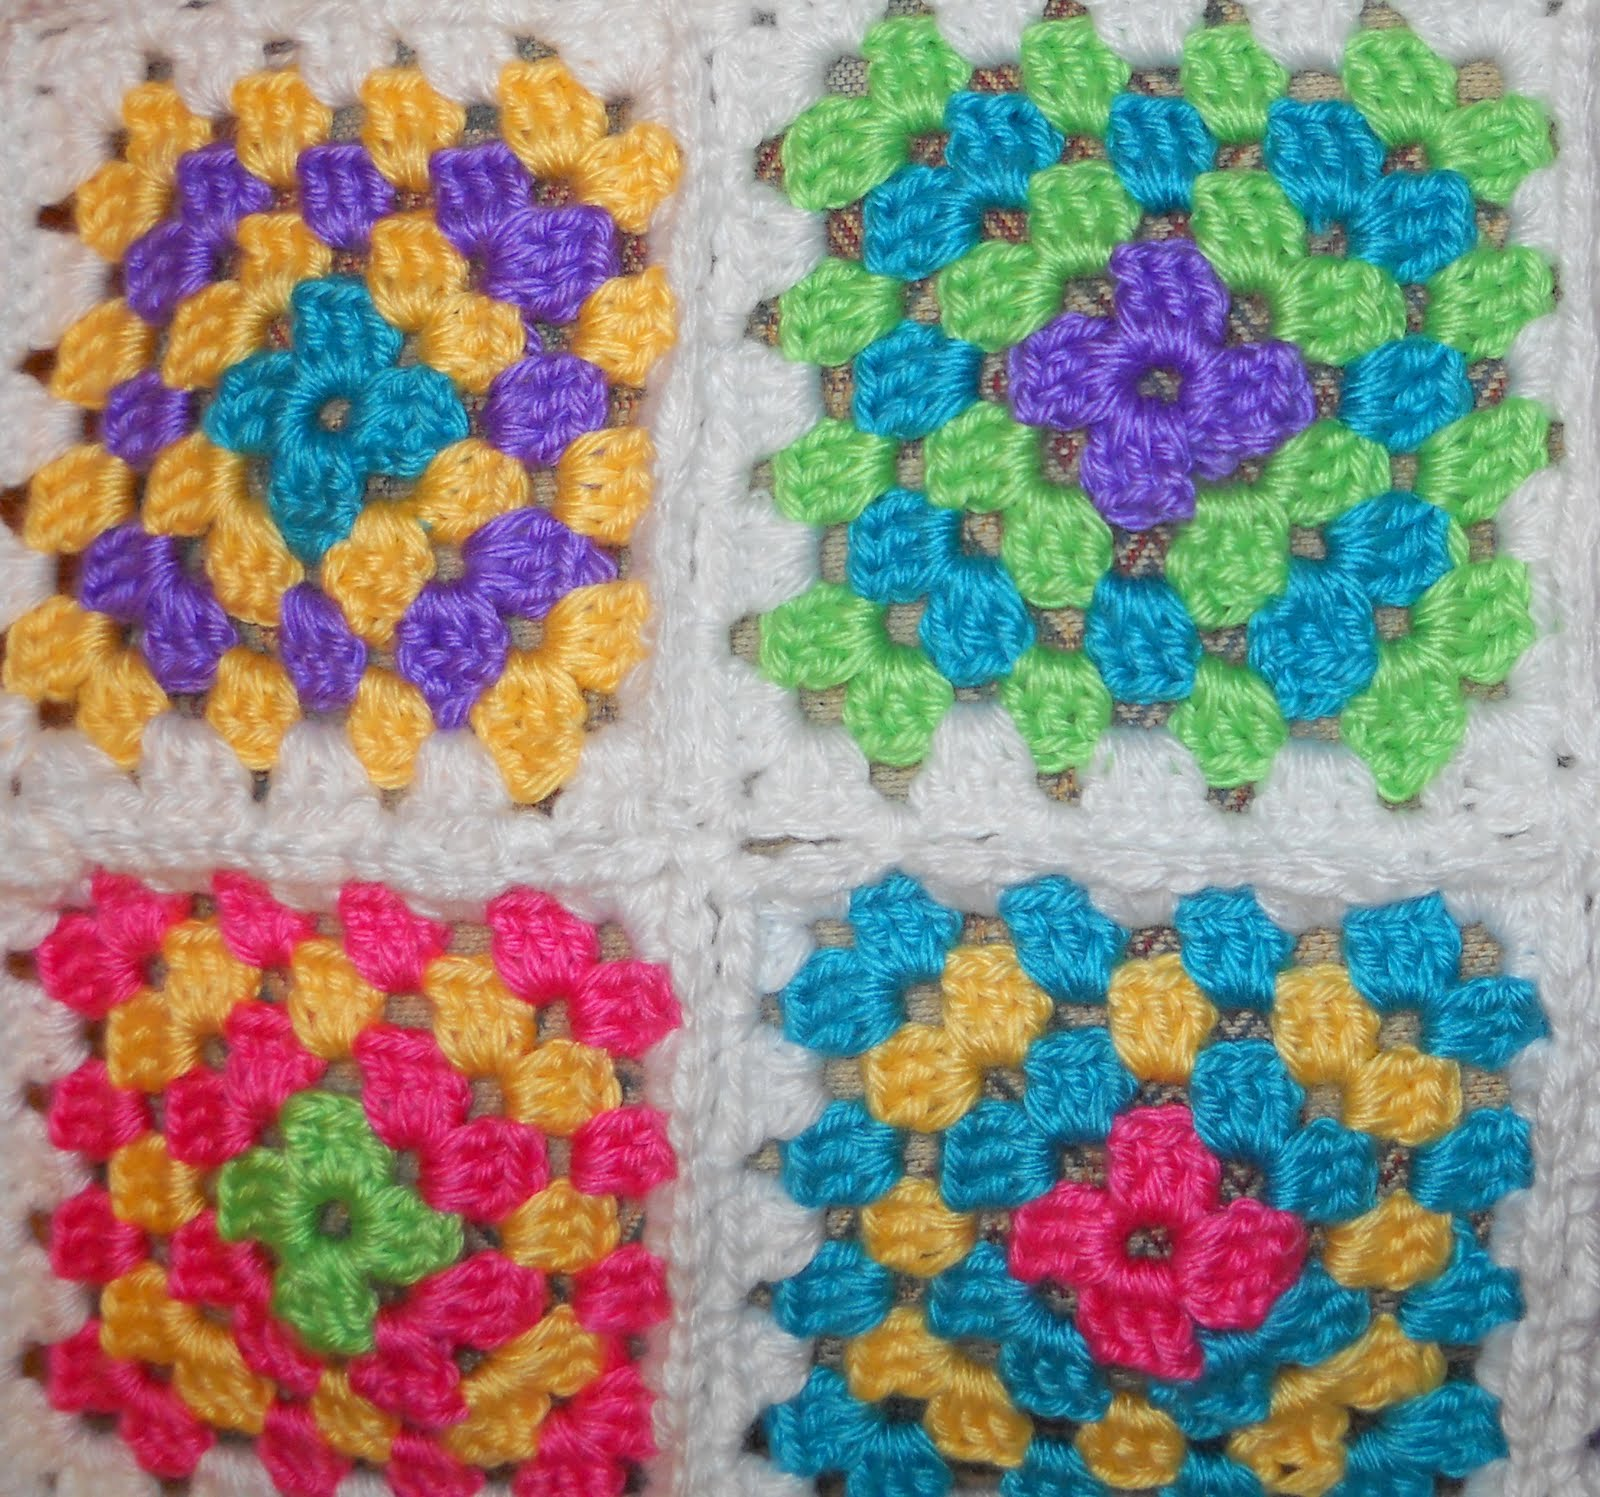 CROCHETED GRANNY SQUARE PATTERN - Crochet and Knitting ...